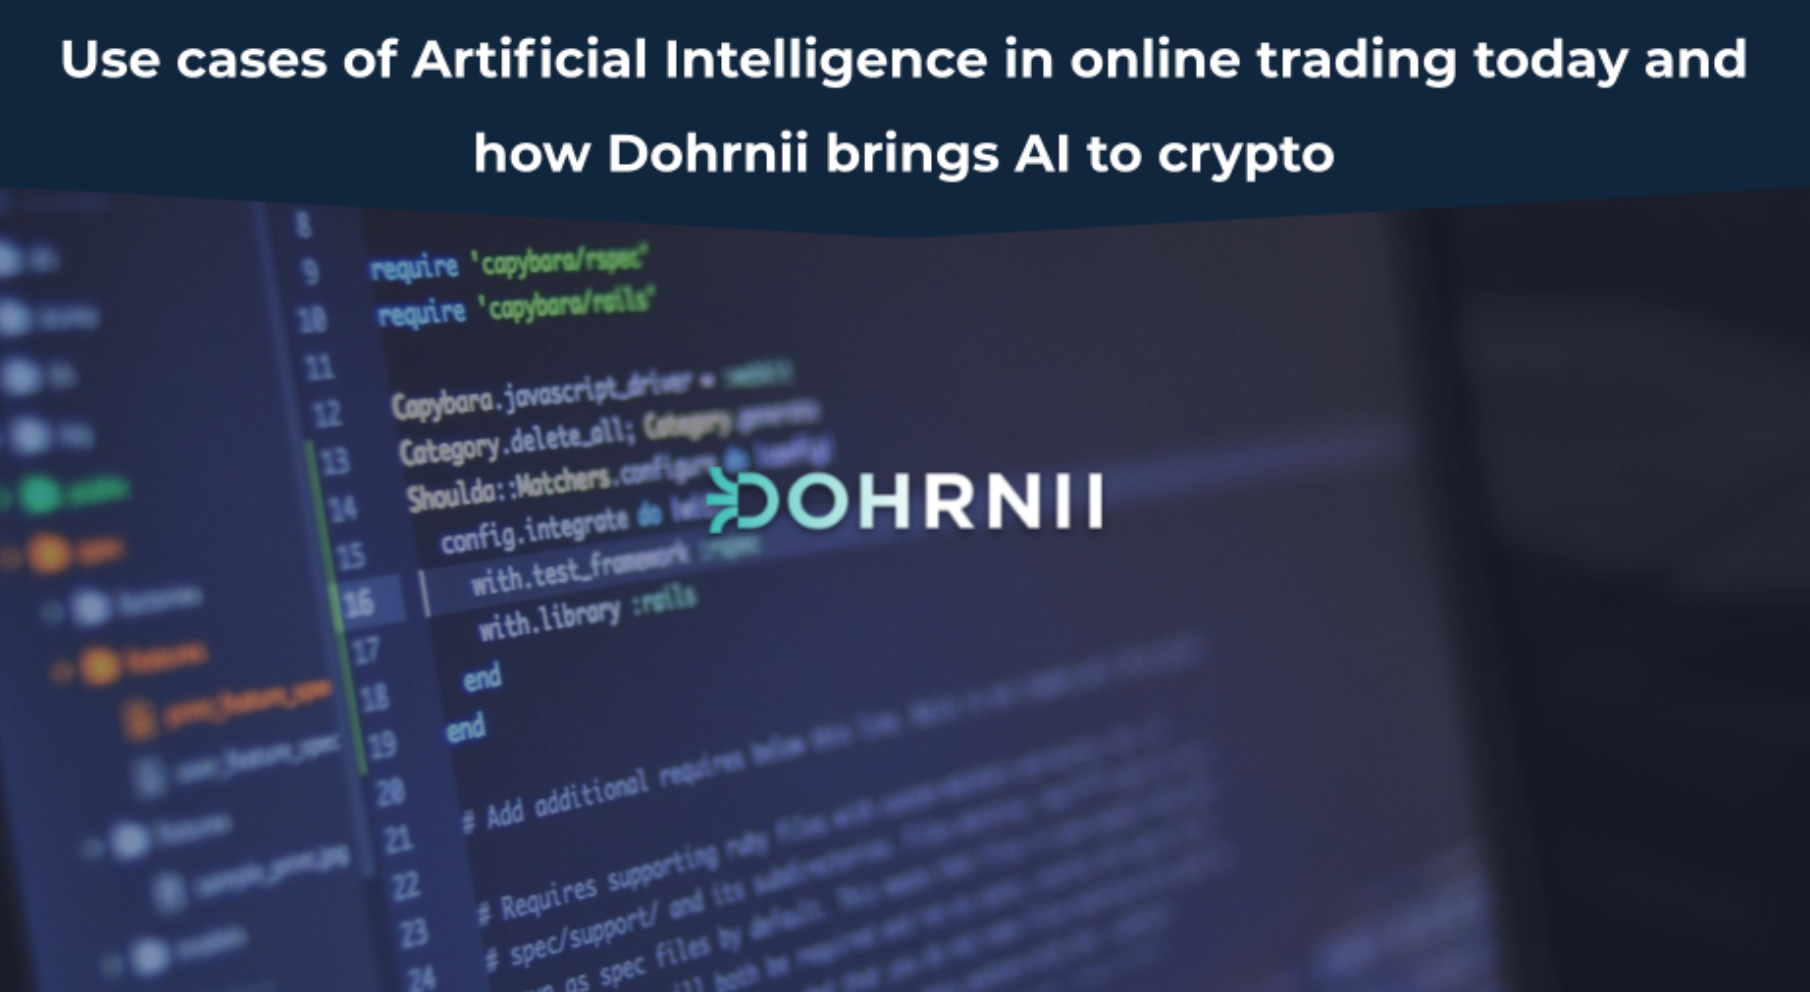 Use cases of Artificial Intelligence in online trading today and how Dohrnii brings AI to crypto